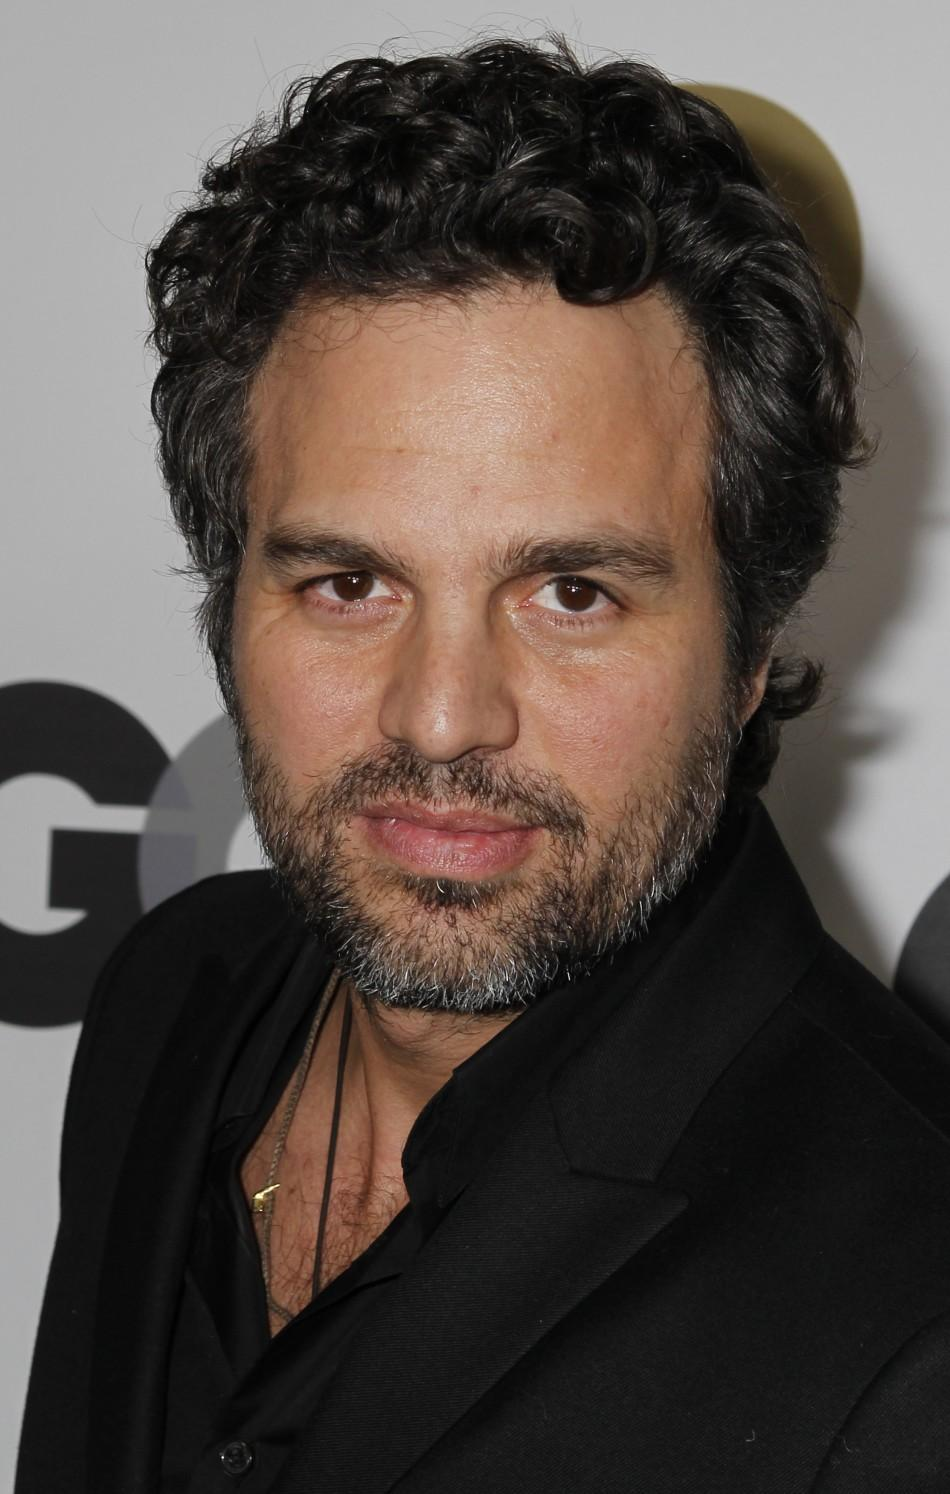 Mark Ruffalo as Bruce Banner / The Hulk